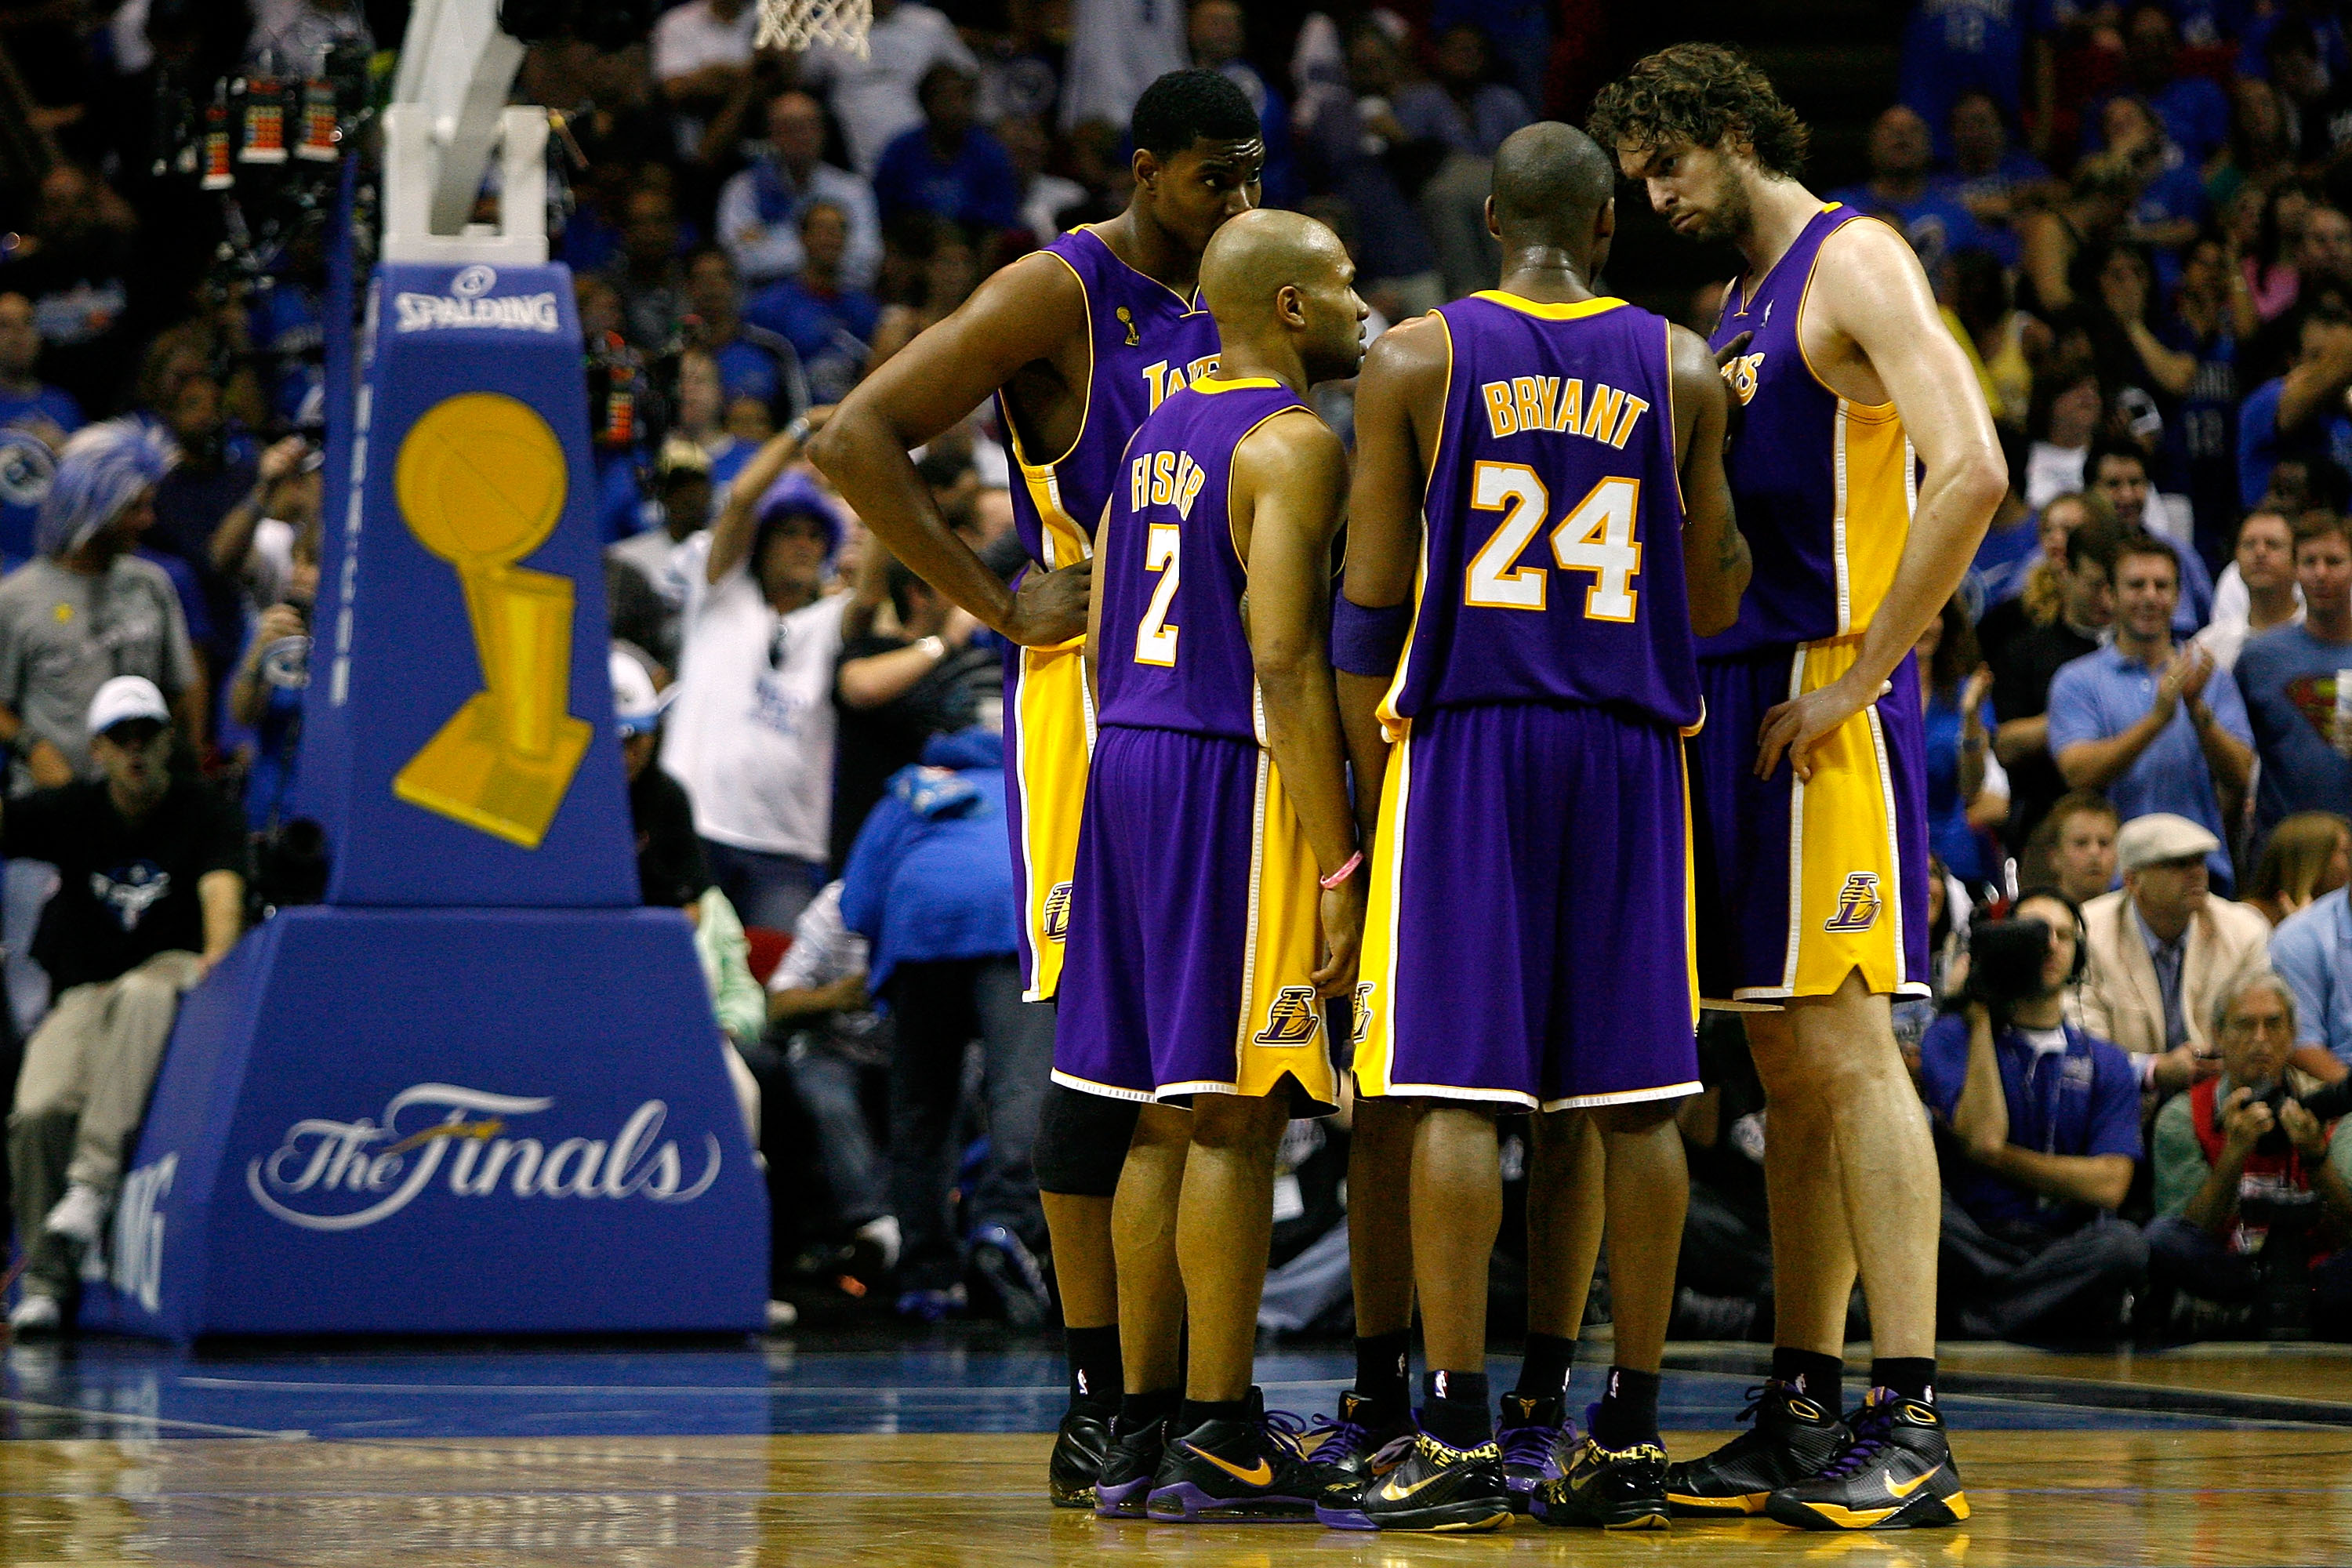 ORLANDO, FL - JUNE 11:  (L-R) Andrew Bynum #17, Derek Fisher #2, Kobe Bryant #24 and Pau Gasol #16 of the Los Angeles Lakers huddle in the first half against the Orlando Magic in Game Four of the 2009 NBA Finals on June 11, 2009 at Amway Arena in Orlando,